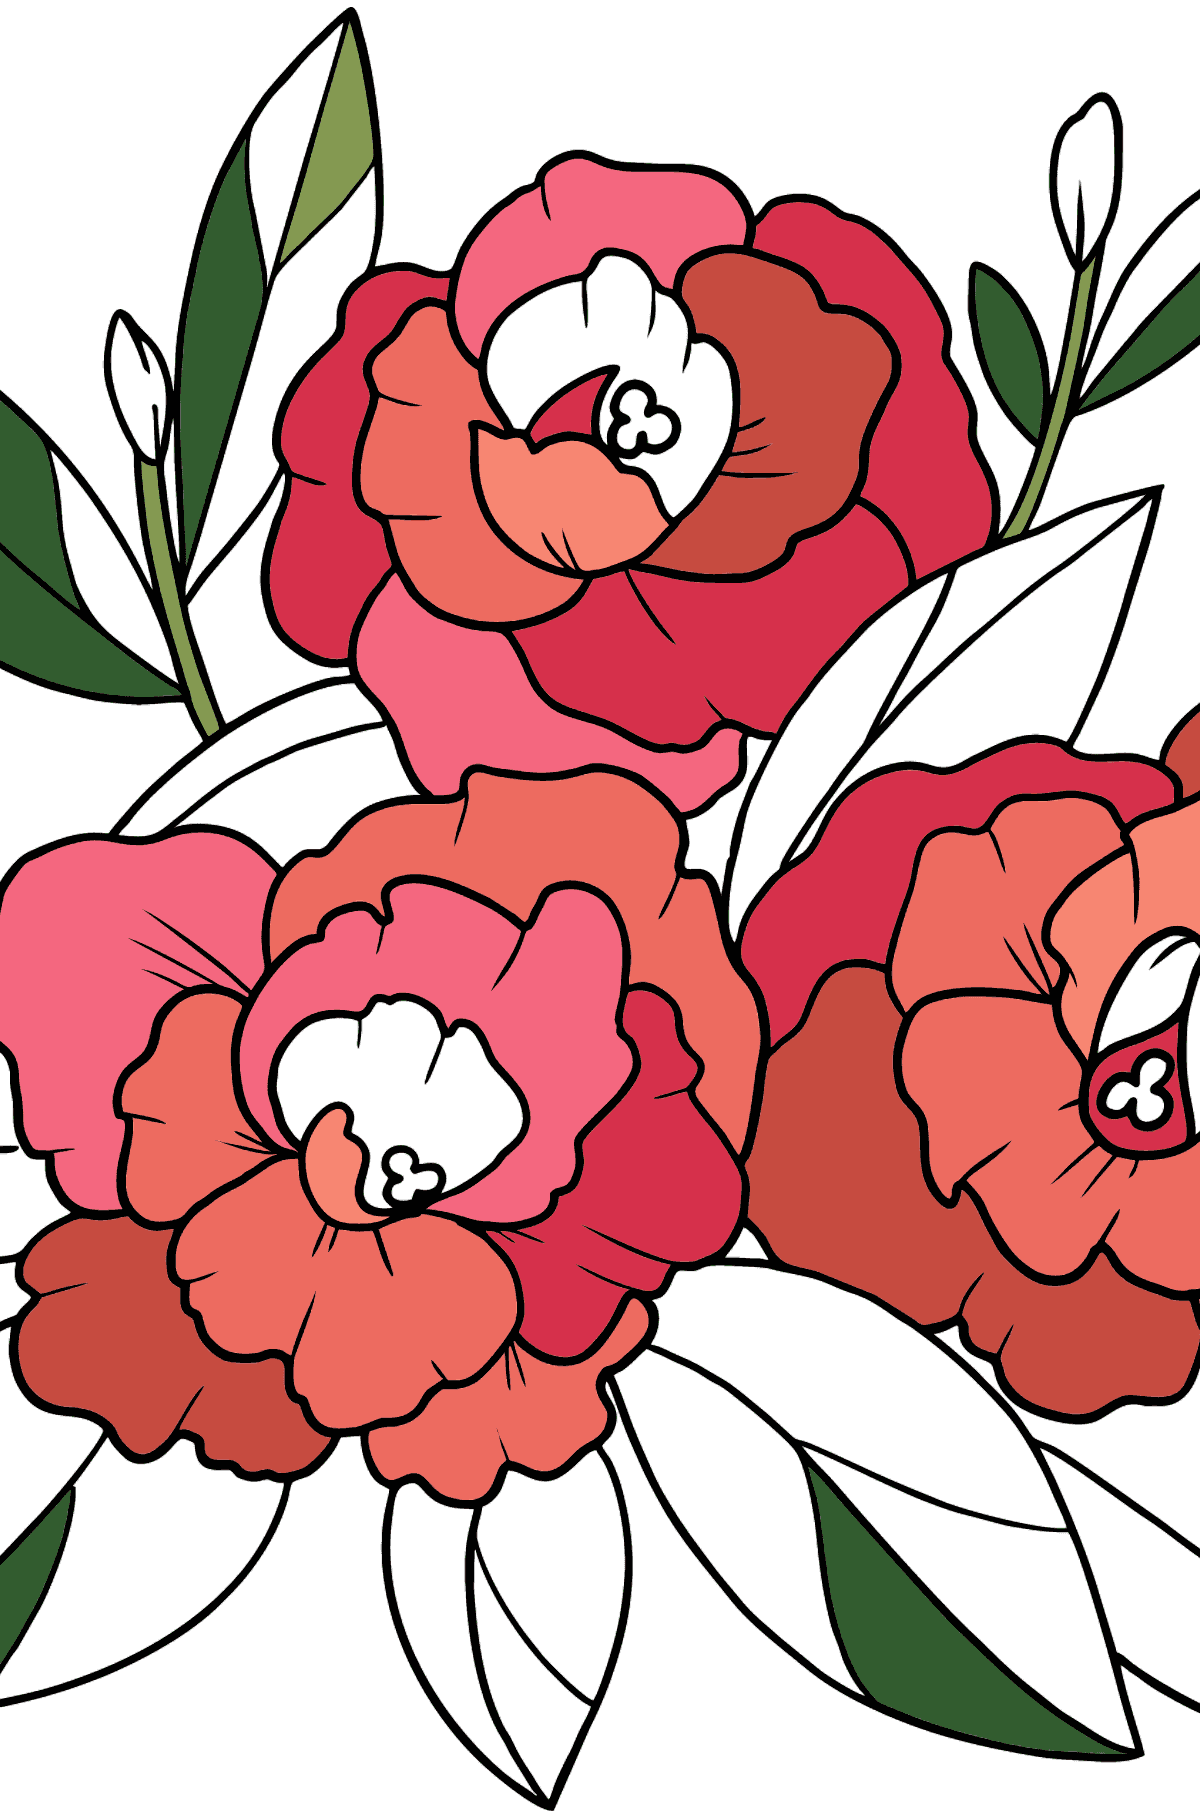 Flower Coloring Page - A Peony Blossom - Coloring Pages for Kids